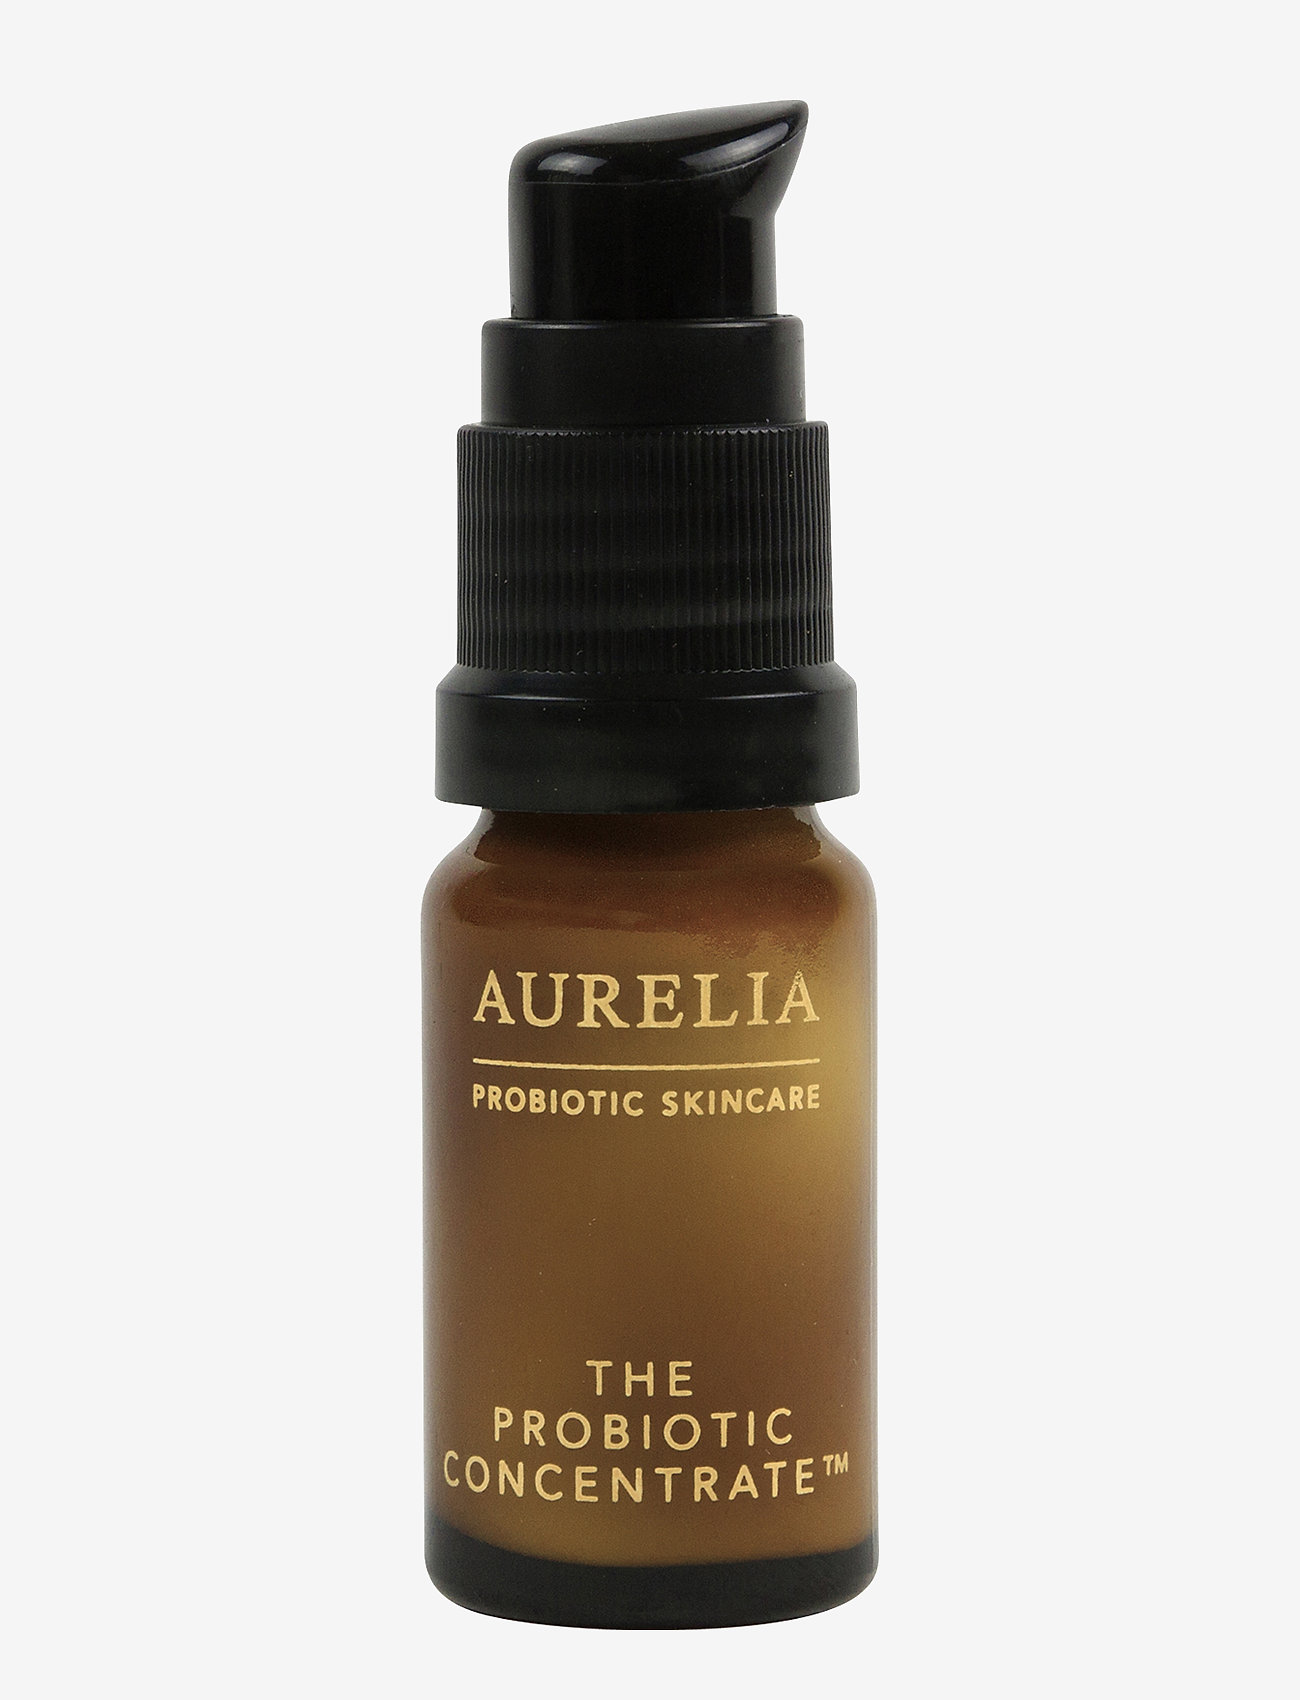 Aurelia Probiotic Skincare - Probiotic Concentrate - serum - natural - 0